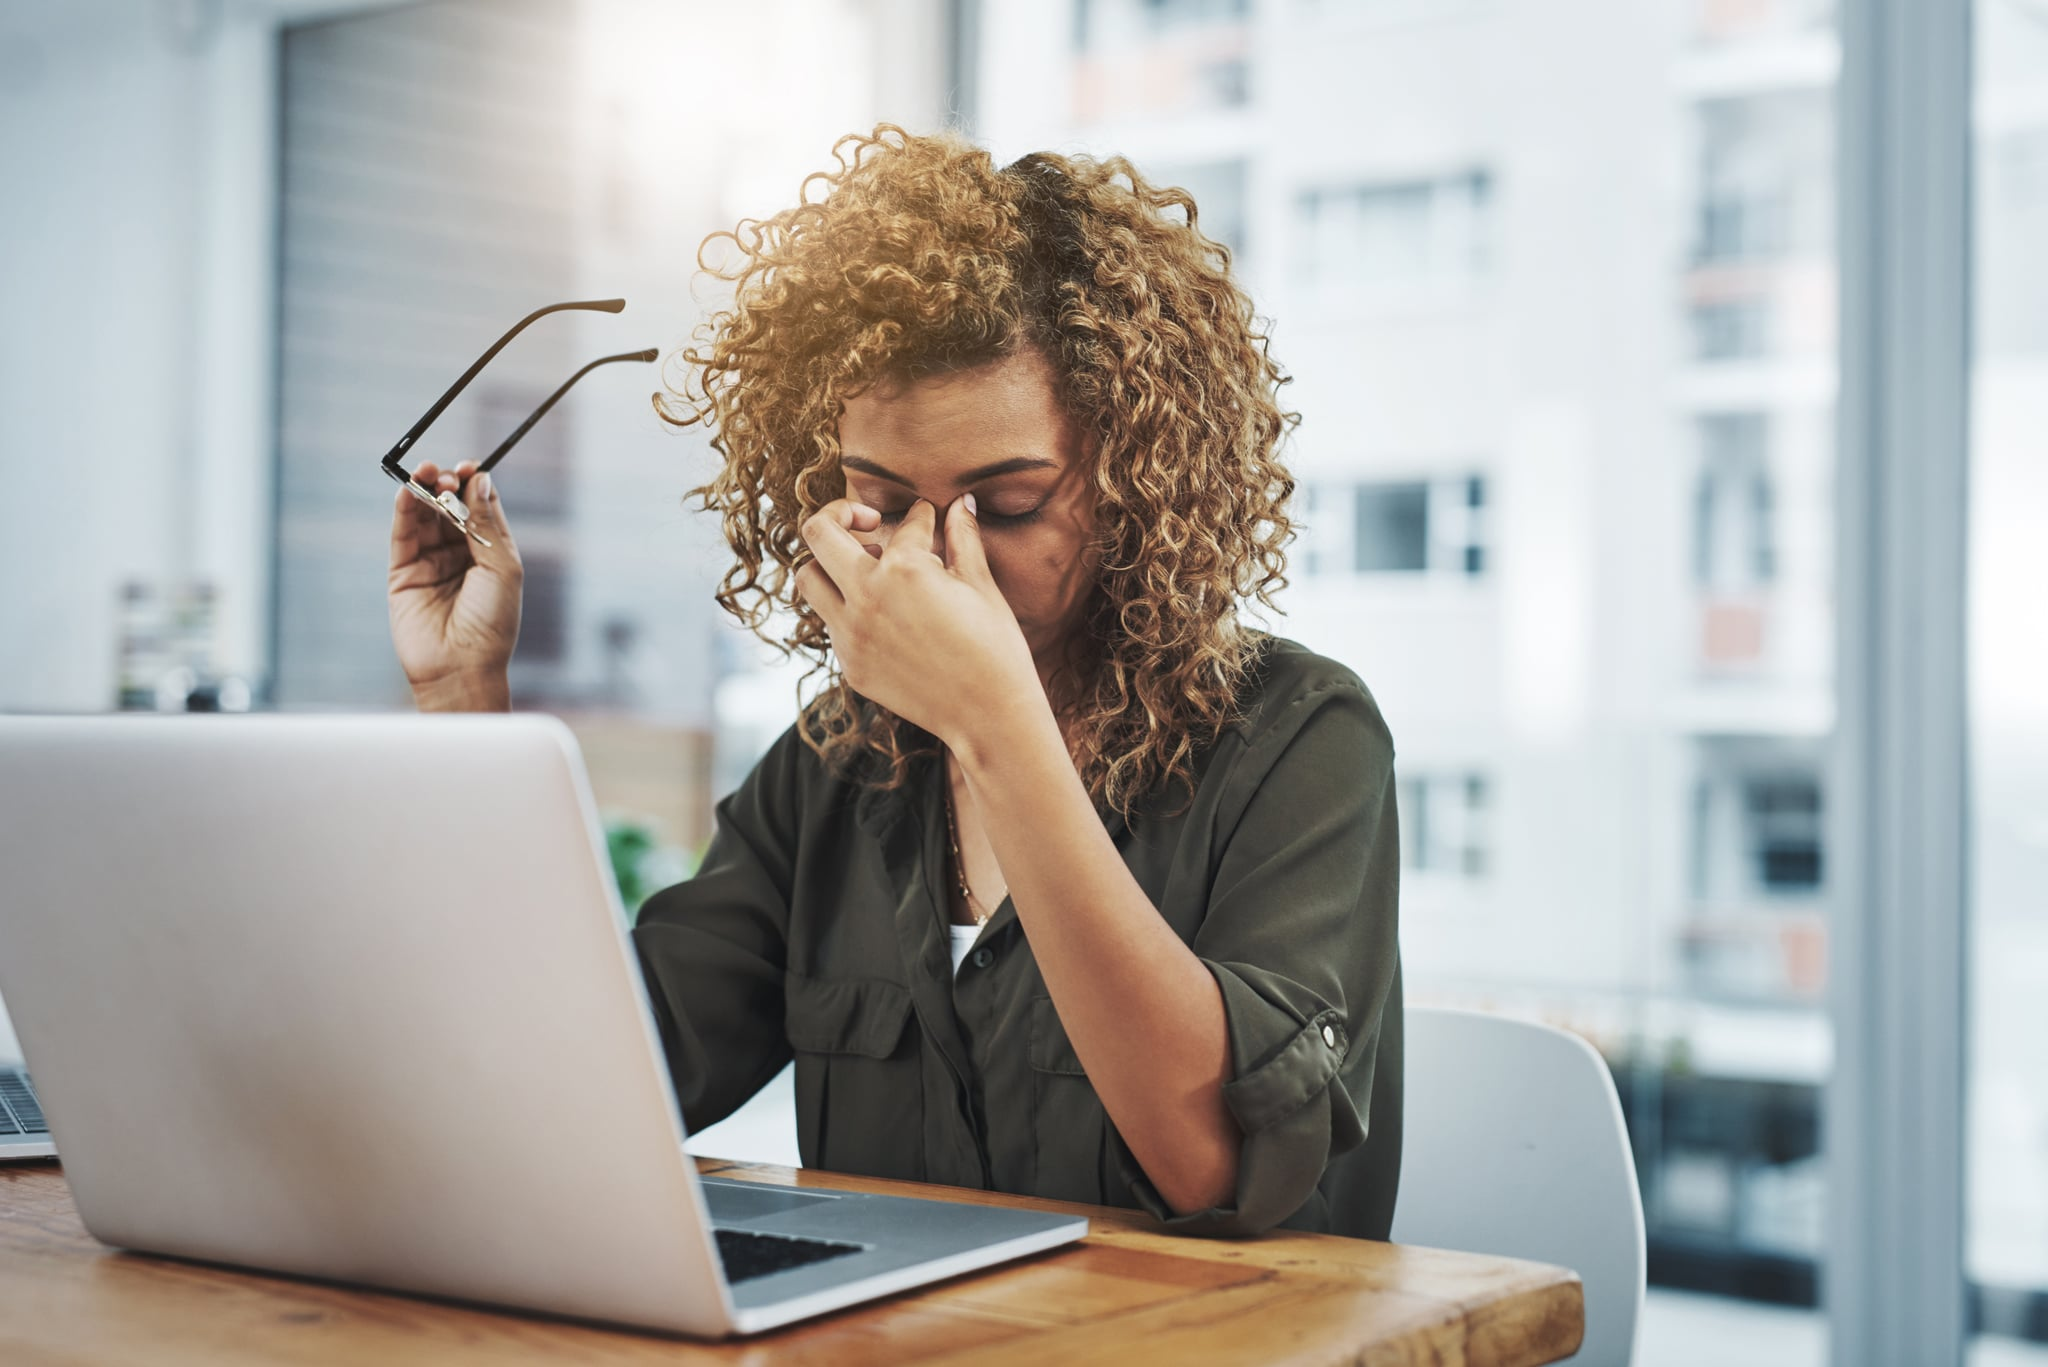 Shot of a young woman suffering from stress while using a computer at her work desk